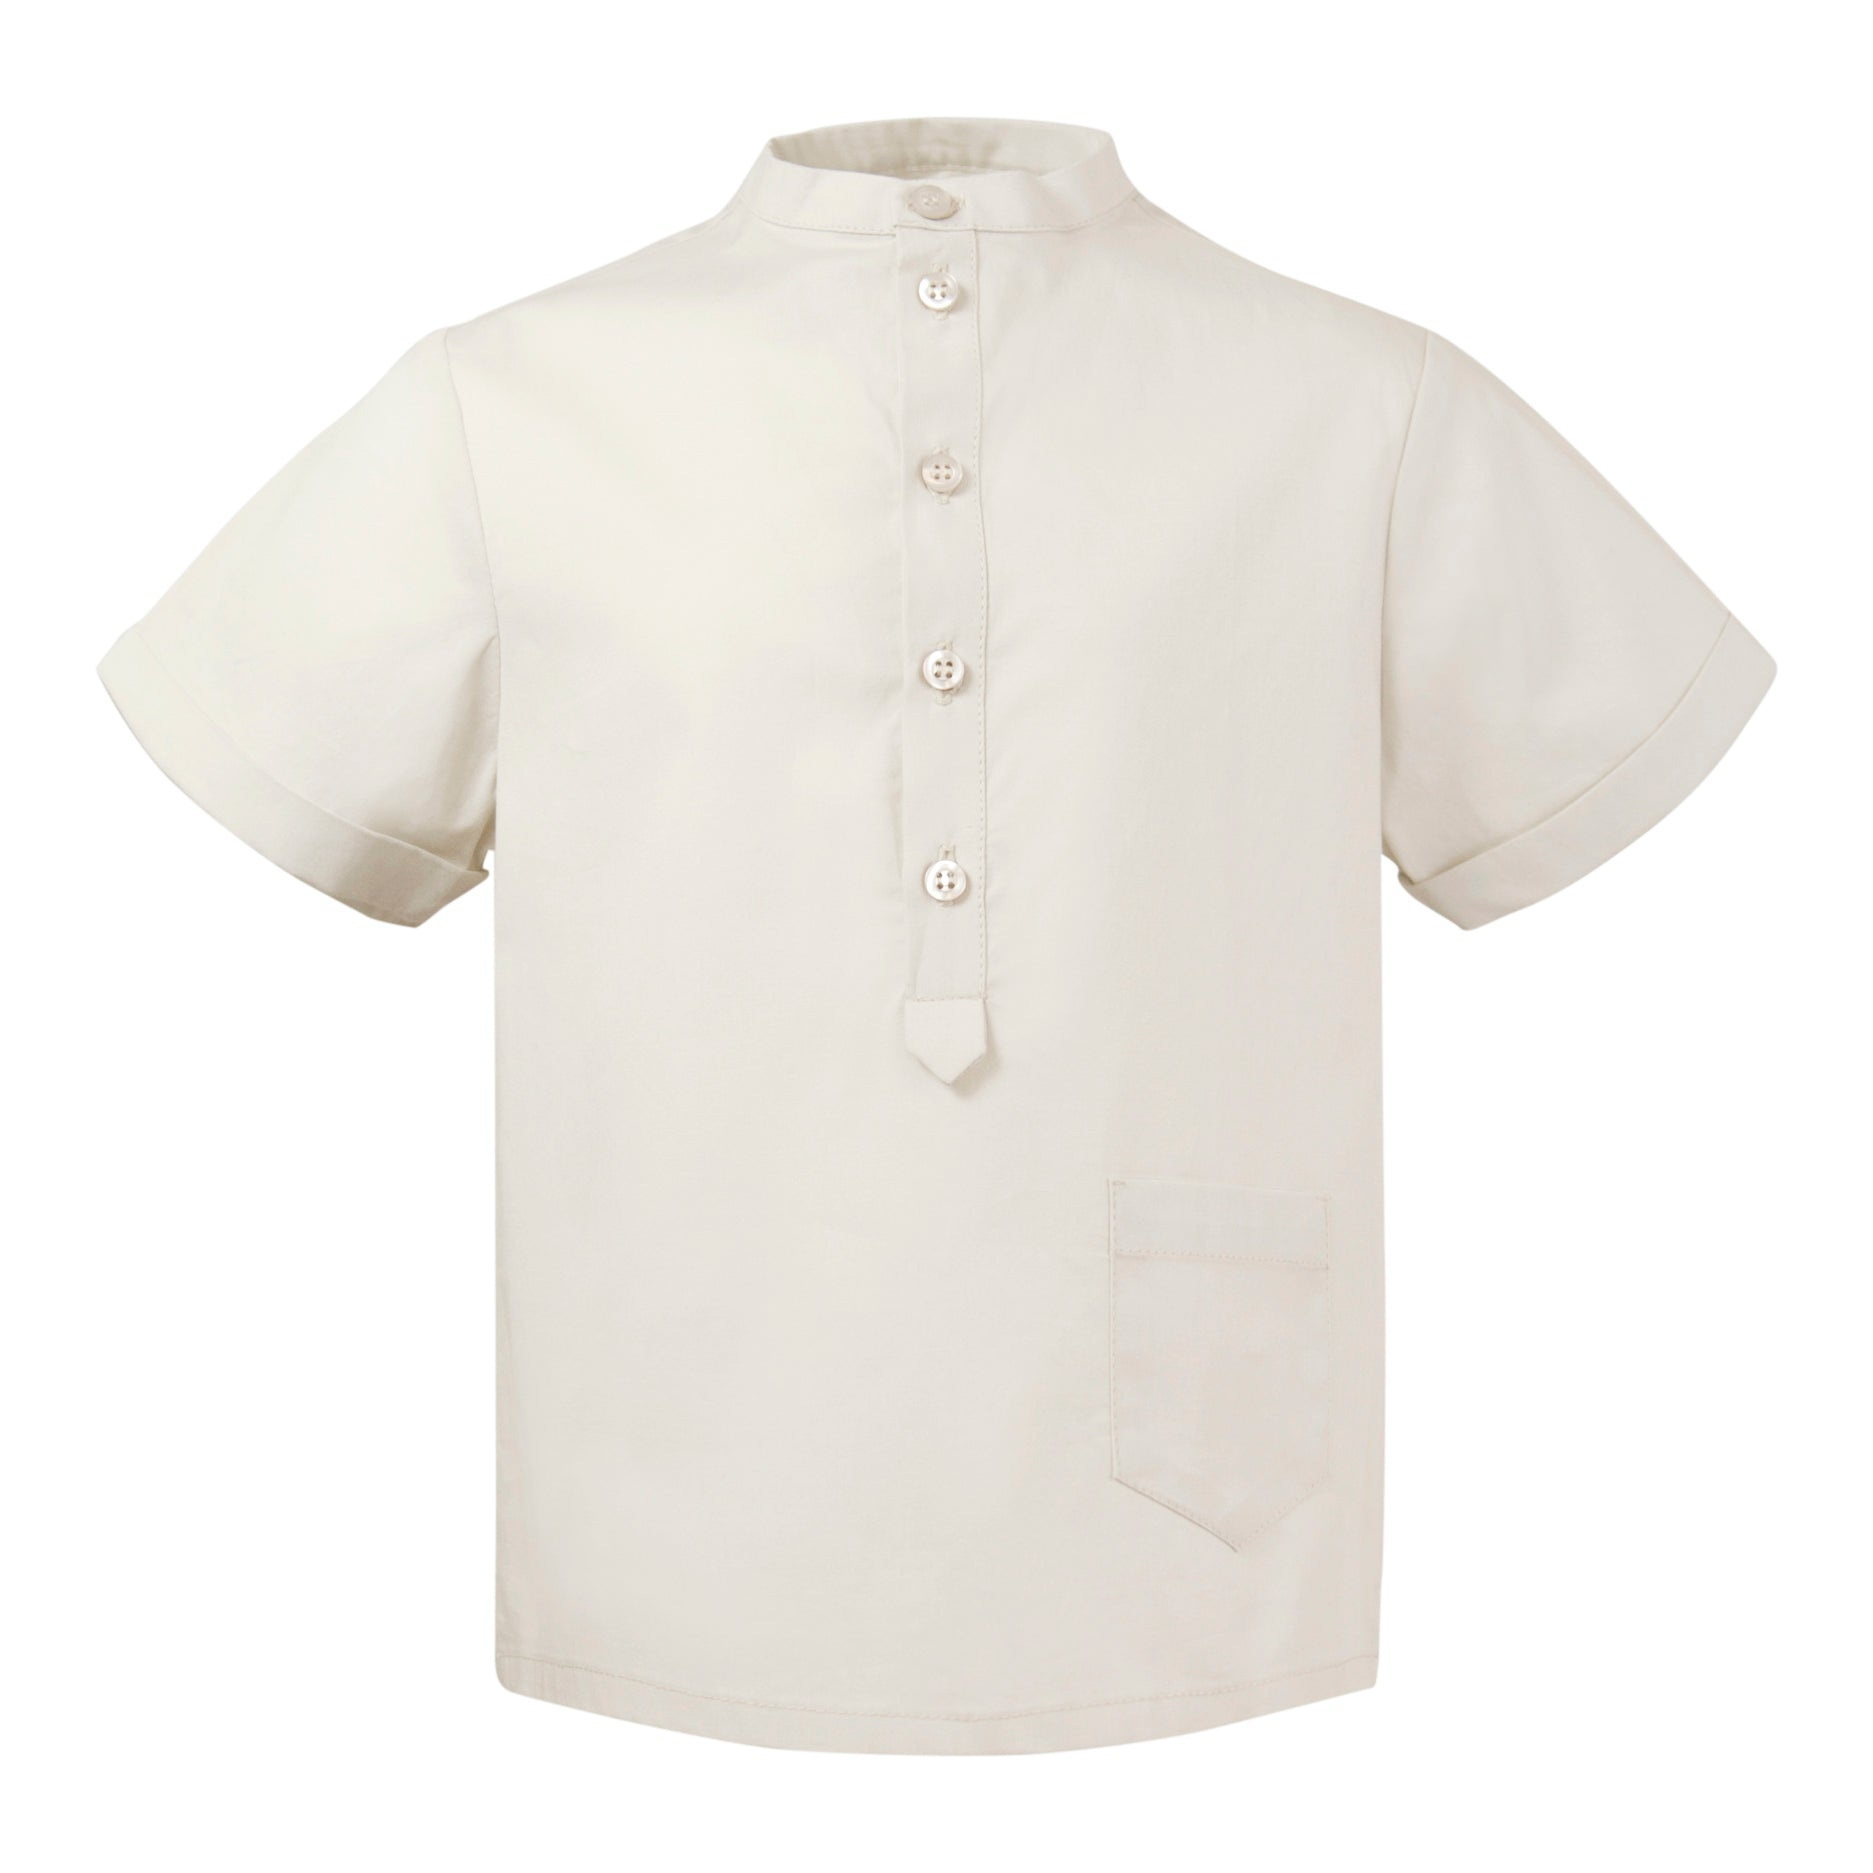 shirt in beige poplin cotton